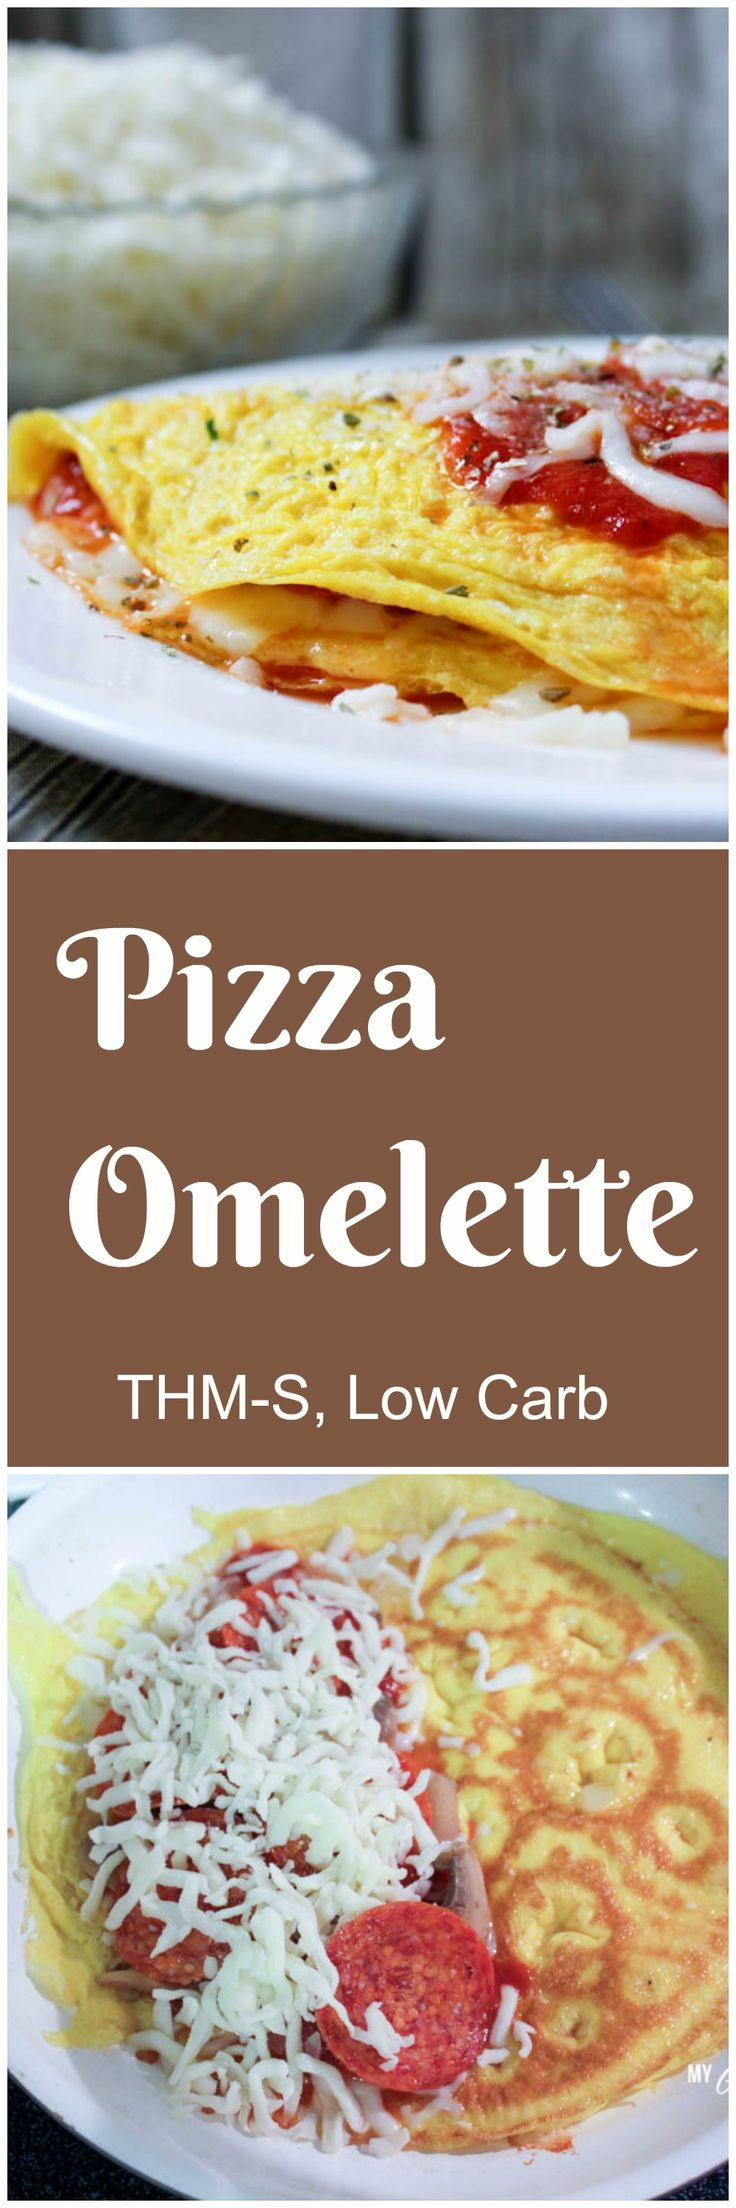 Low Carb Pizza Omelette (THM-S) savory breakfast with all the flavors of your favorite pizza! No special ingredients needed, and only a few minutes to make. This recipe is low carb, gluten free.